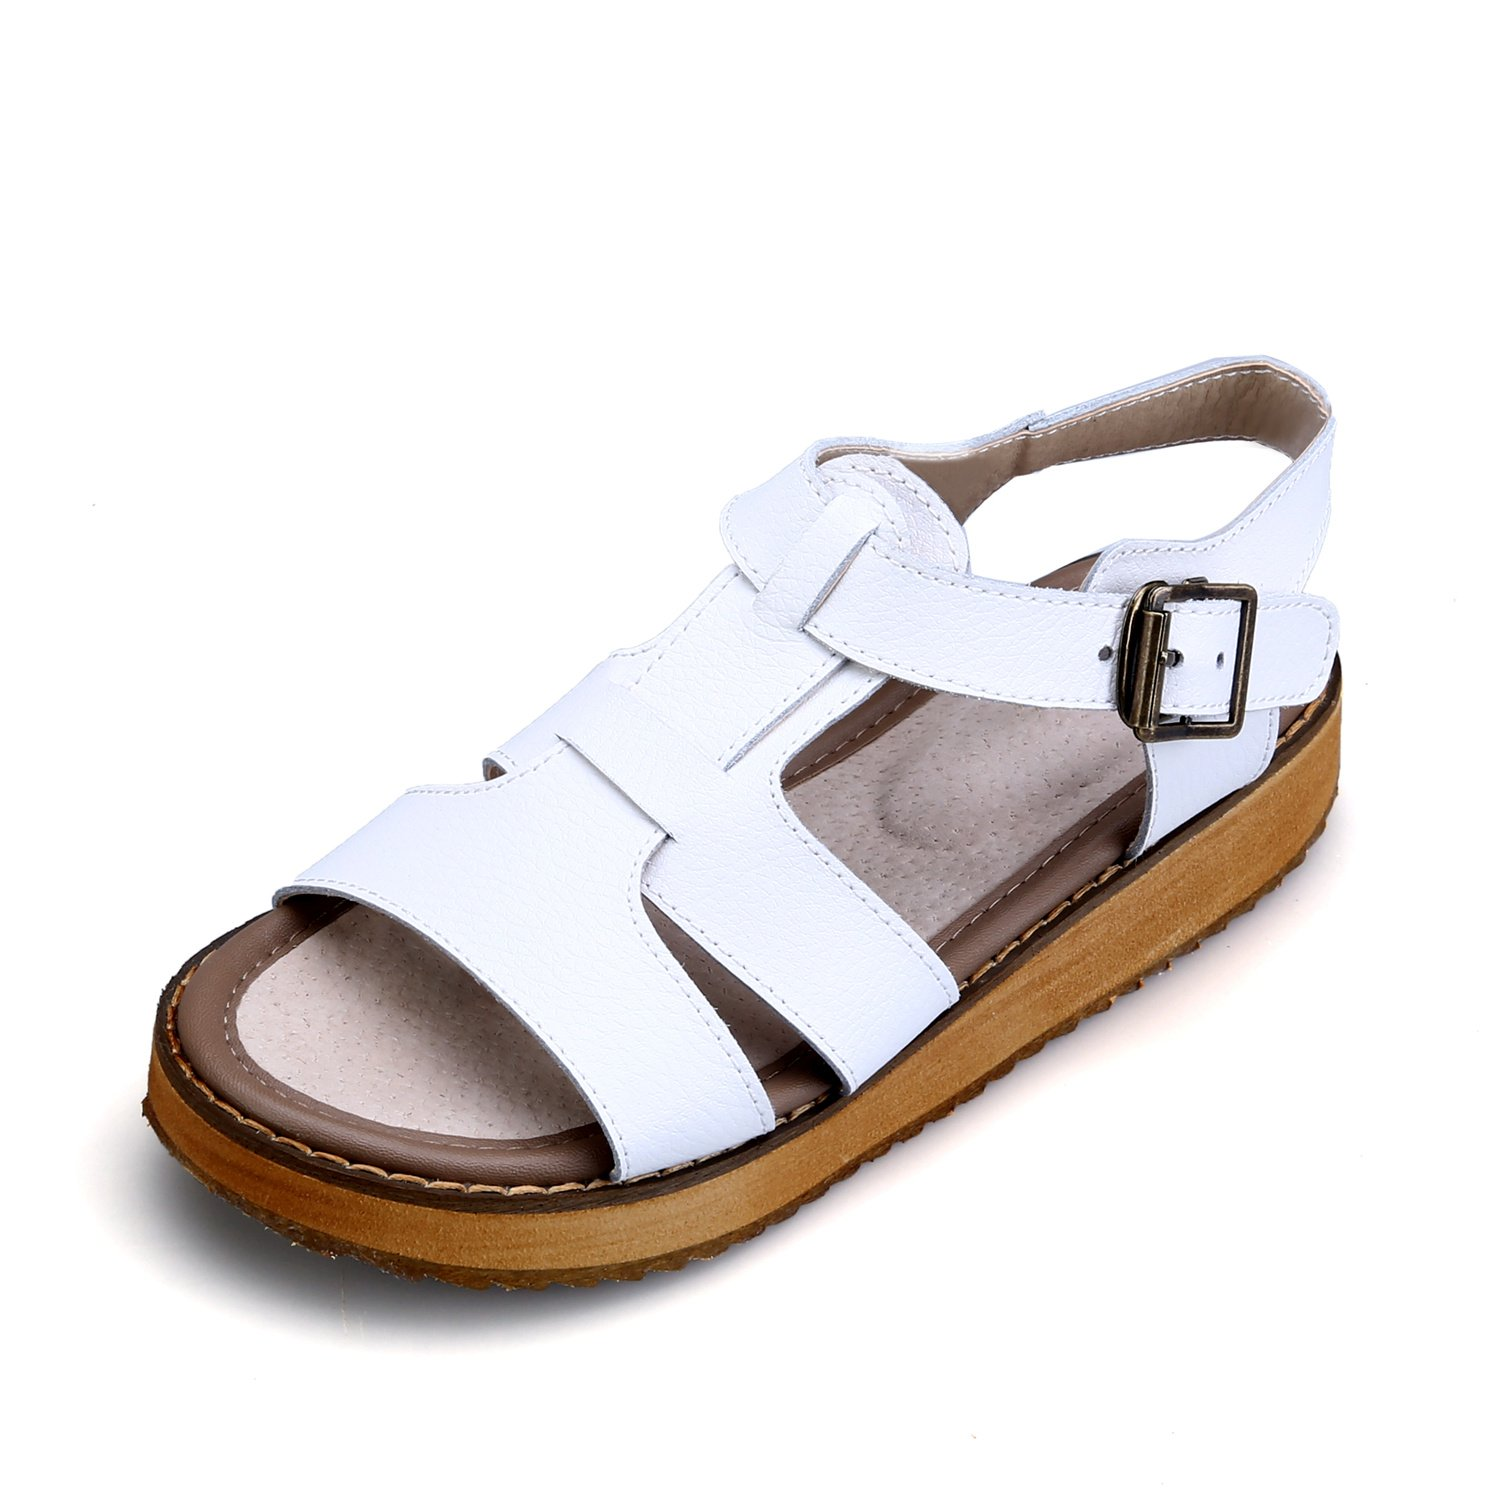 Smilun Girl's Fashion Strappy Roman Sandals Wedge Sandals Flip Flops Thongs Open Toe Sandals Flip Flops Roman Sandal Summer Sandals White US6